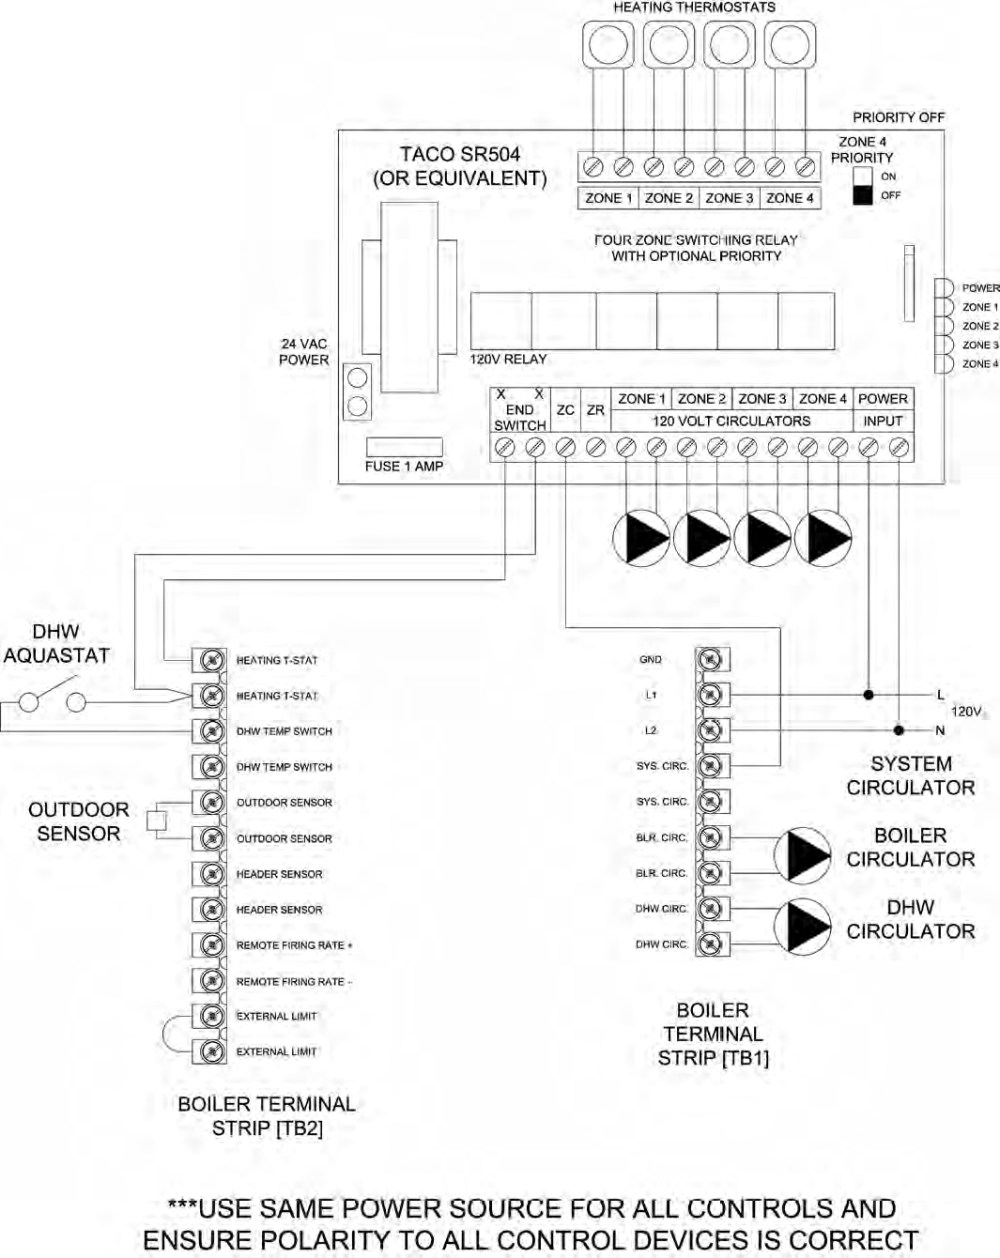 medium resolution of taco cartridge circulator 007 f5 wiring diagram taco 007 f5 wiring diagram gallery 4c